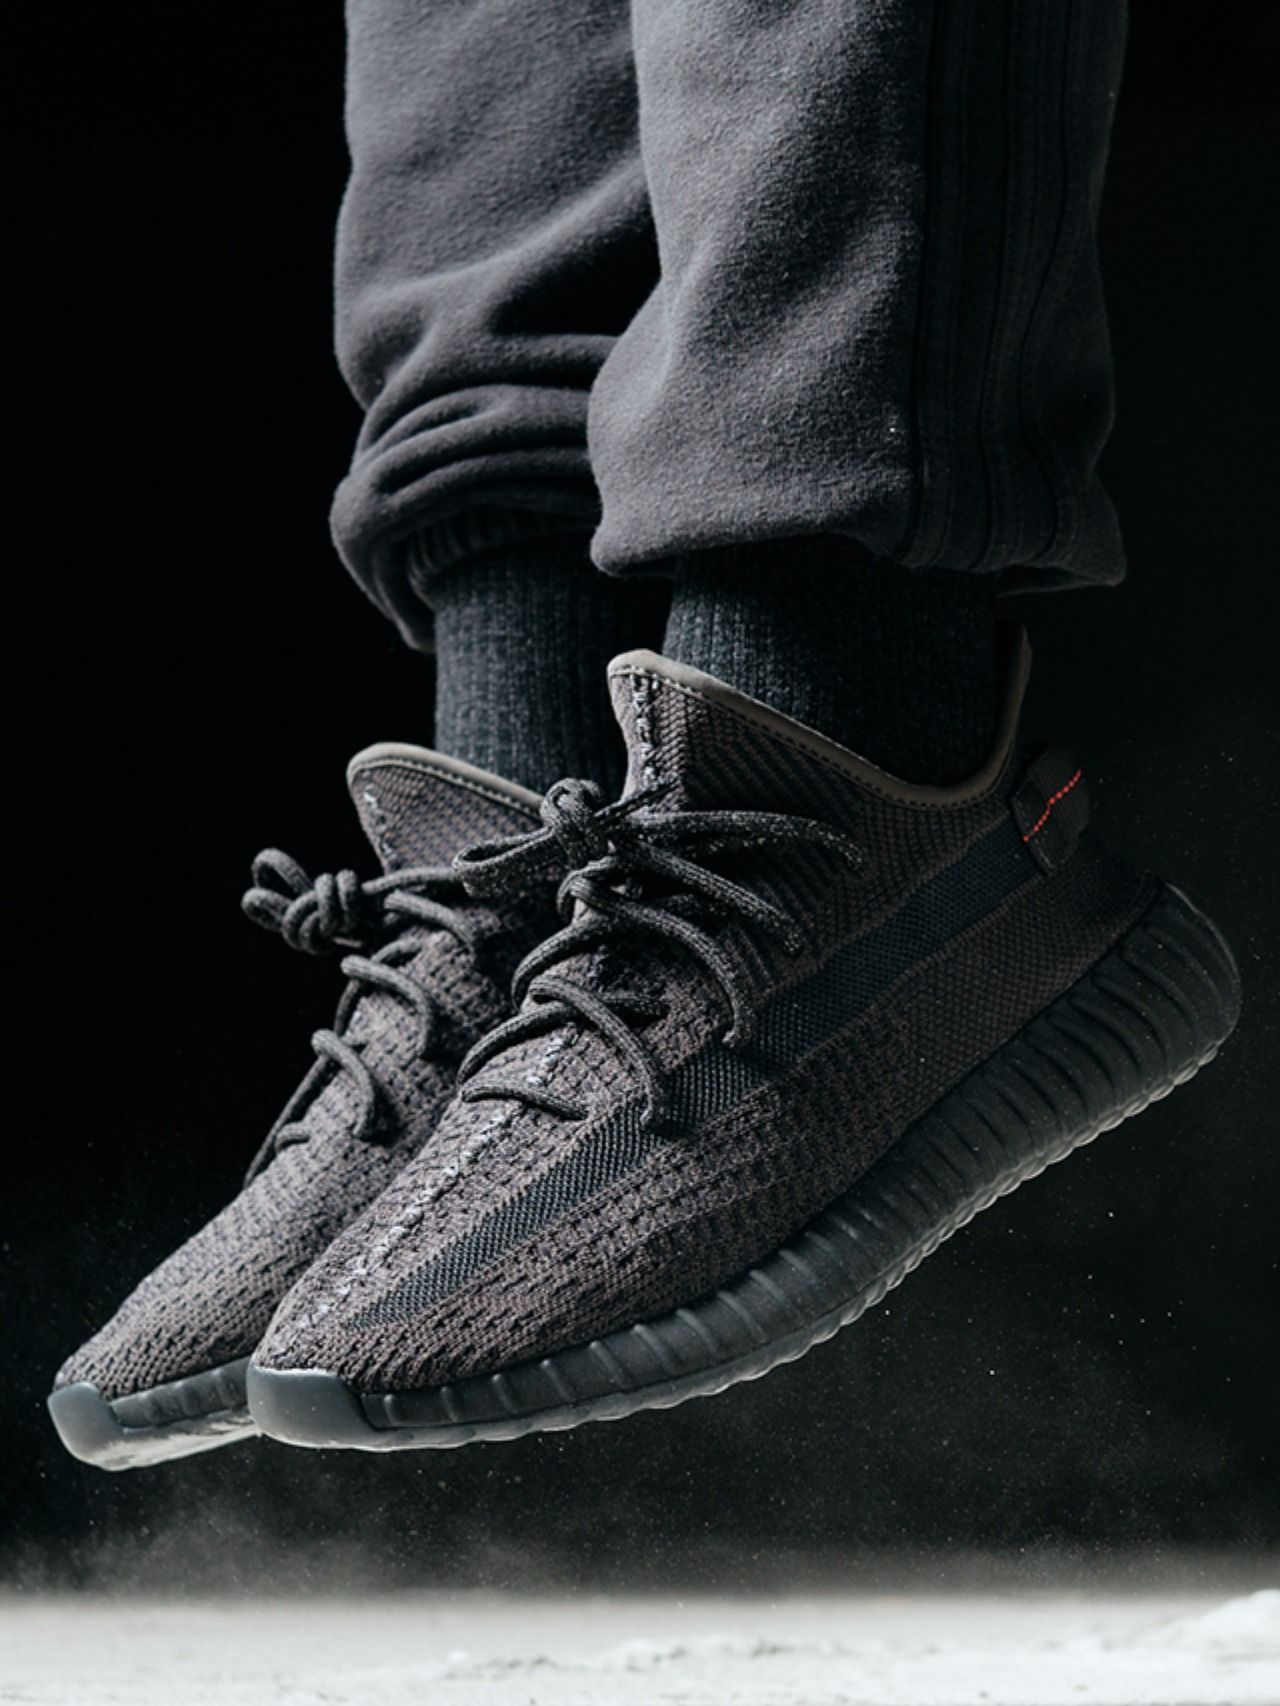 Yeezy Shoes Indian Price: Buy Sports Shoes Online at Best